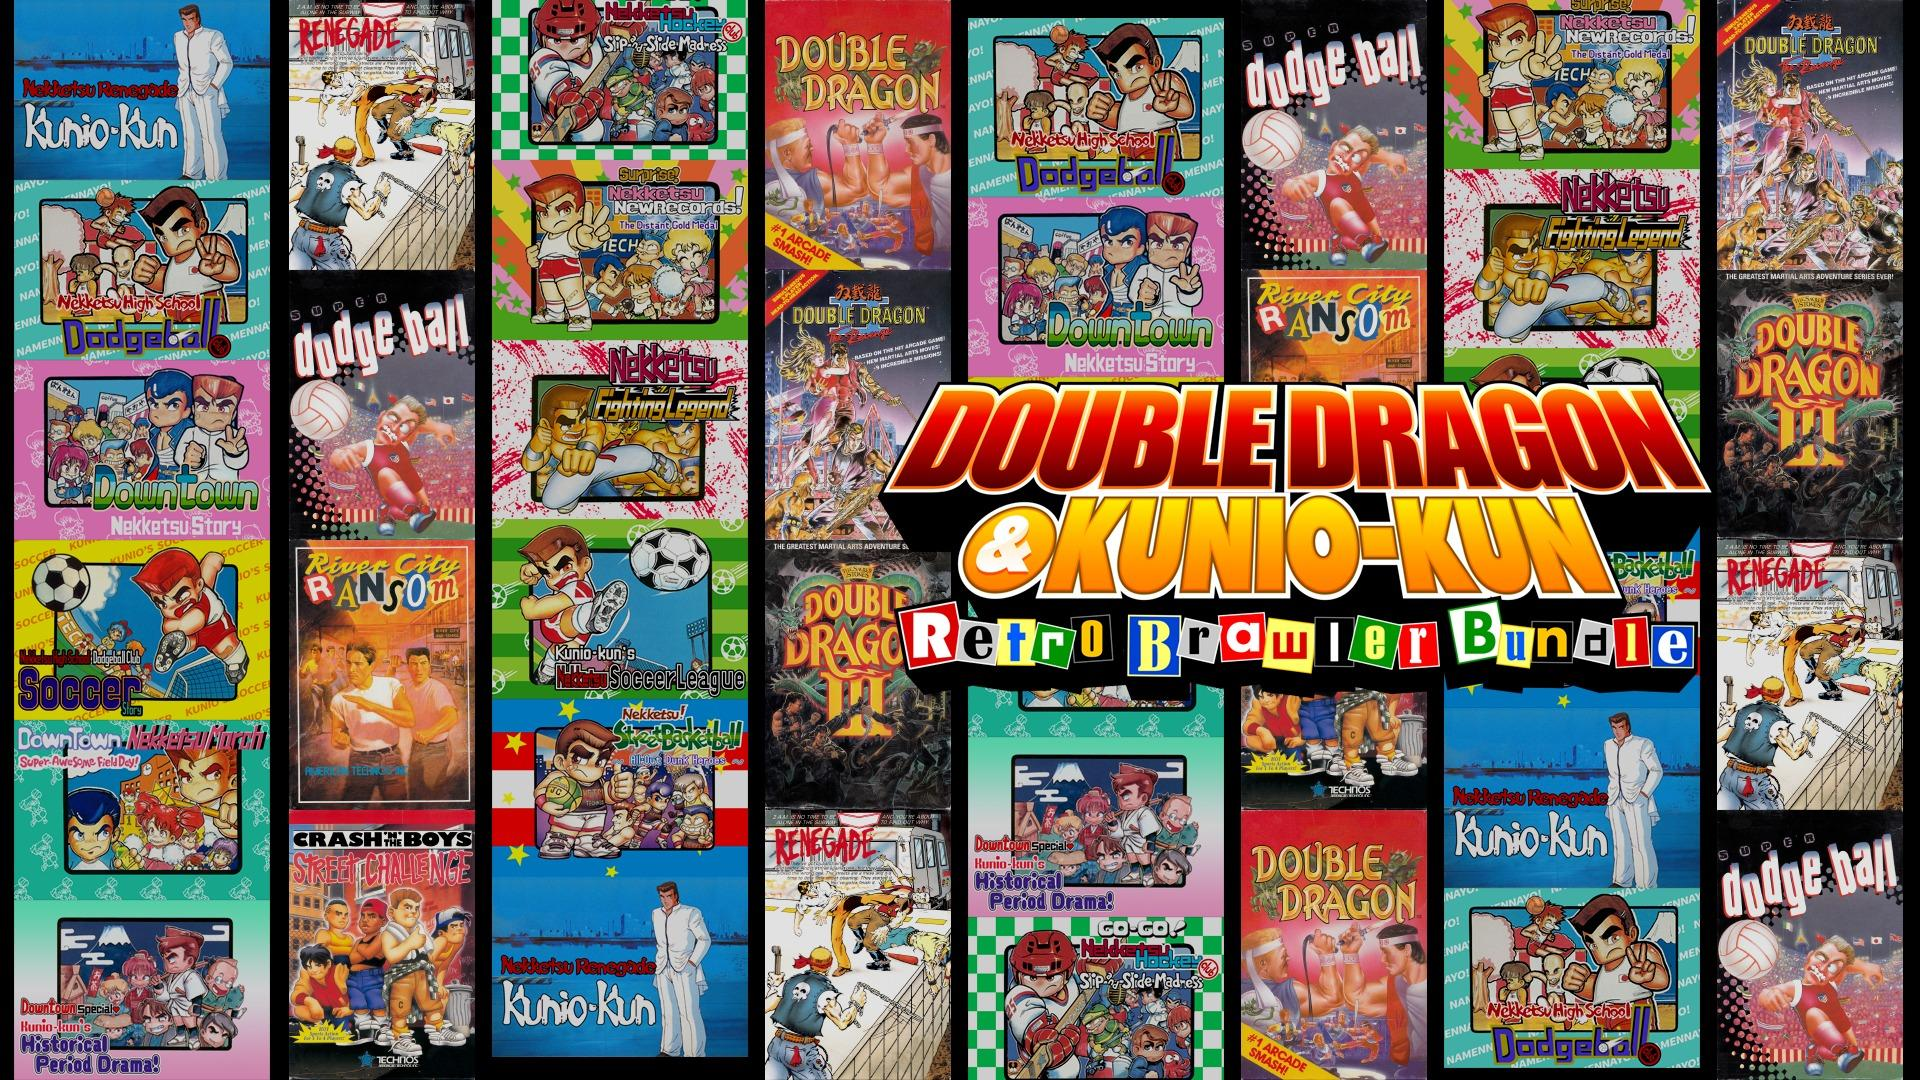 Double Dragon Kunio Kun Retro Brawler Bundle Brings 18 Classic Games To The West Later This Month Real Otaku Gamer Real Otaku Gamer Is Your Source For Geek Culture Goodness